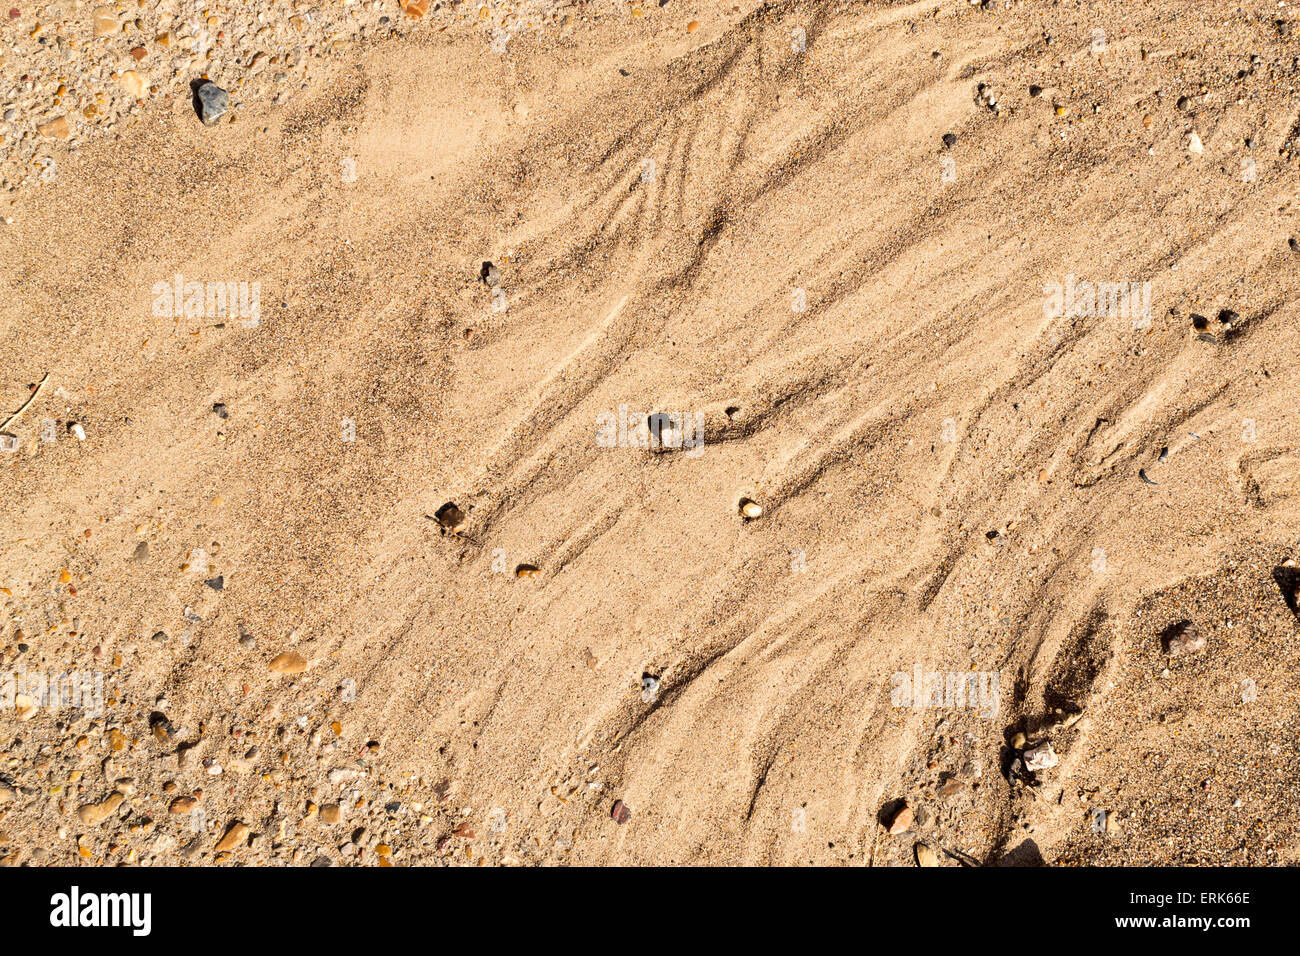 Sand wash from rain water with stones and trails - Stock Image